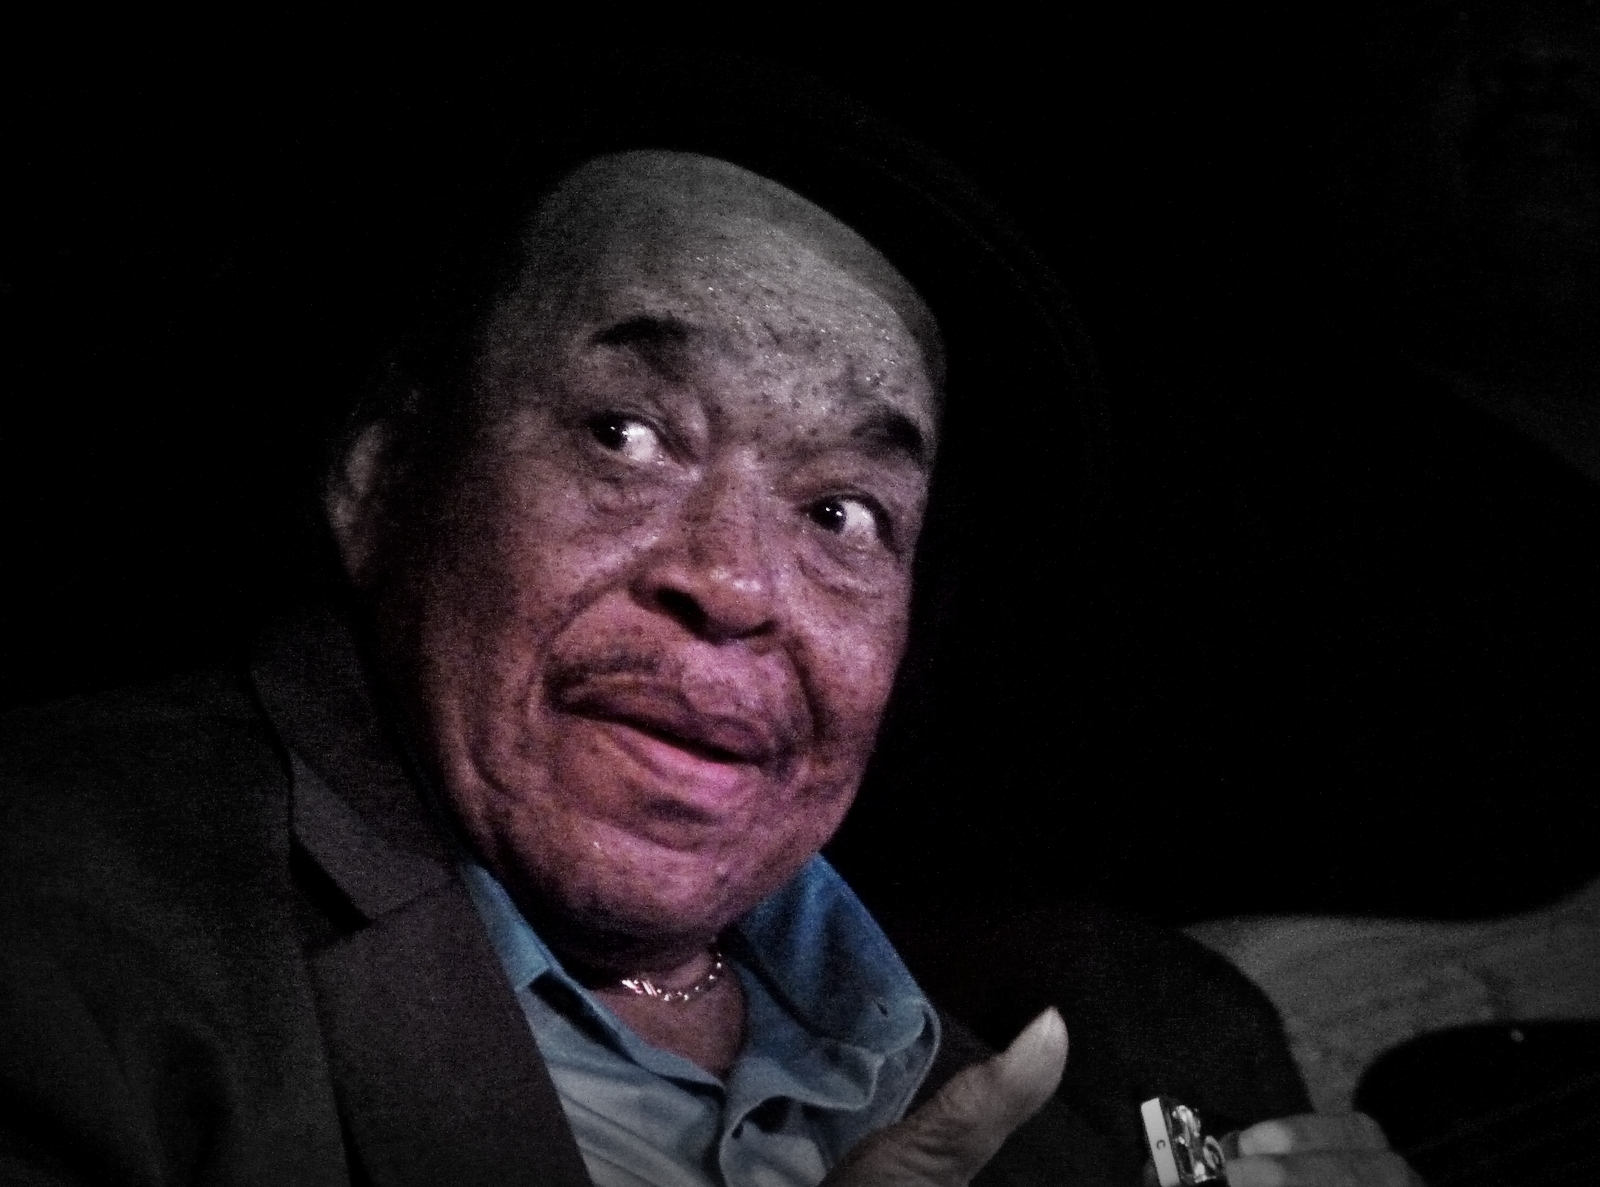 James cotton at the horseshoe with james cotton band, june 2013